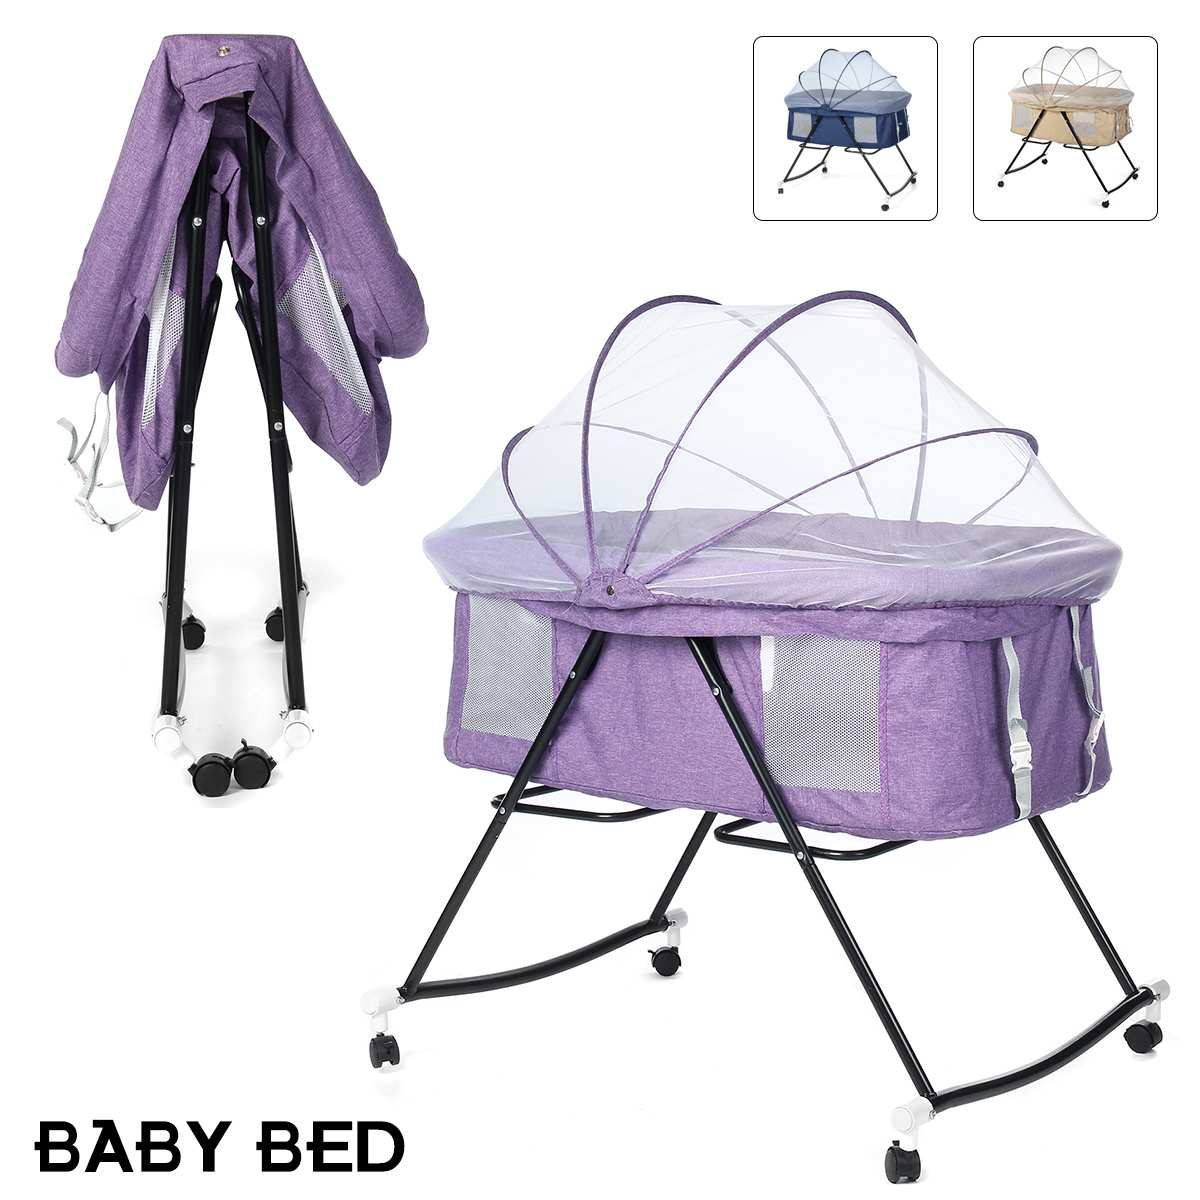 3 Colors New Multifunction Foldable Sleeping Crib Baby Bed Splicing Cradle Bed Mosquito Net With Wheels For In/Outdoor